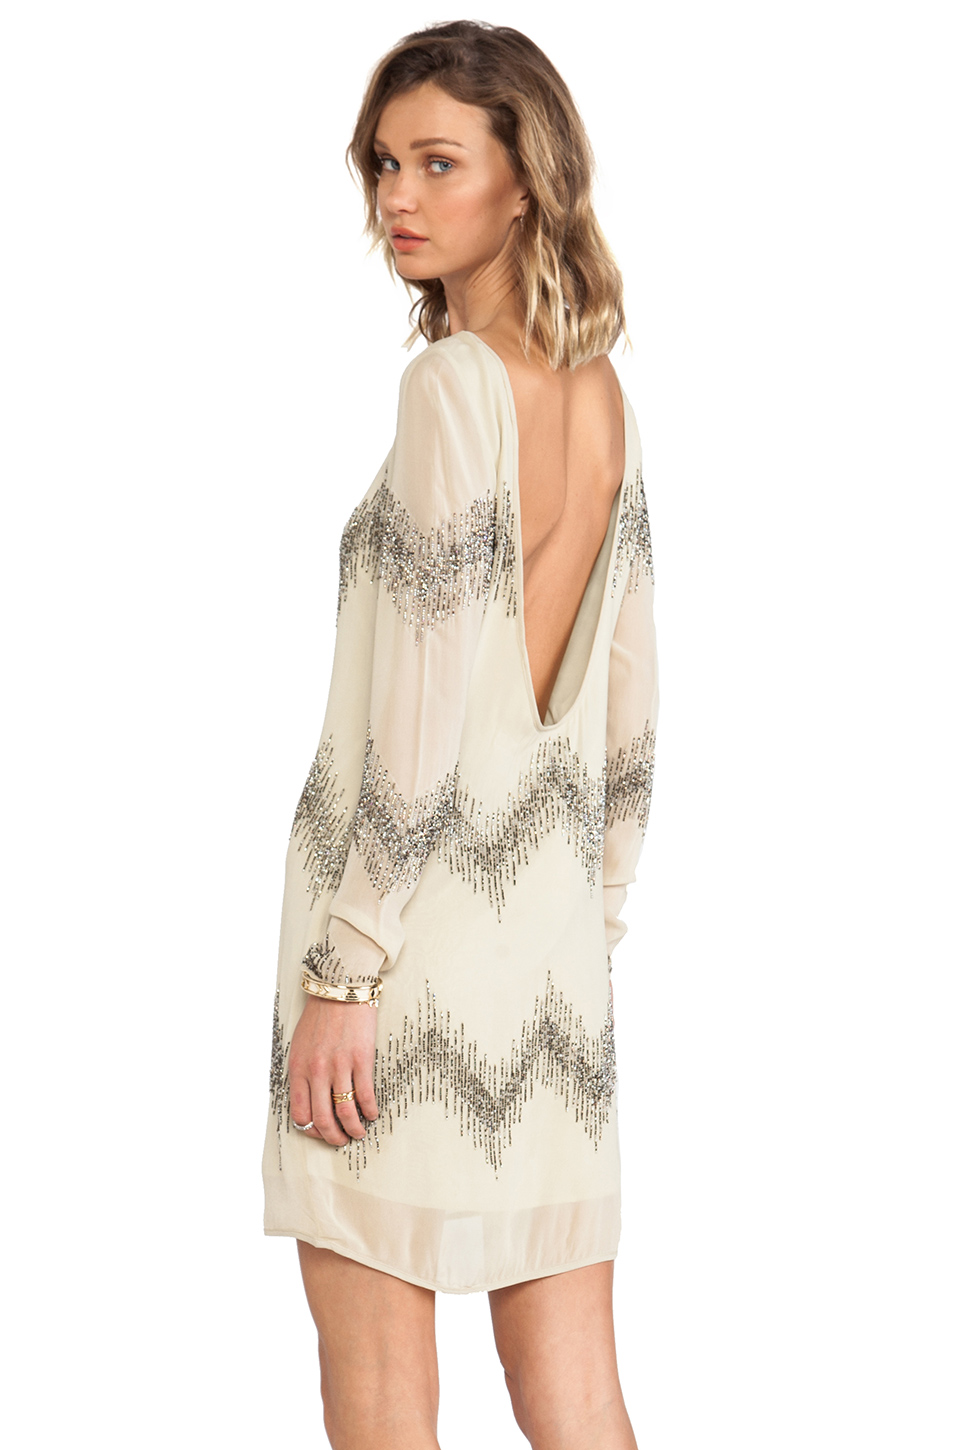 Mlv alexa long sleeve beaded dress in olive